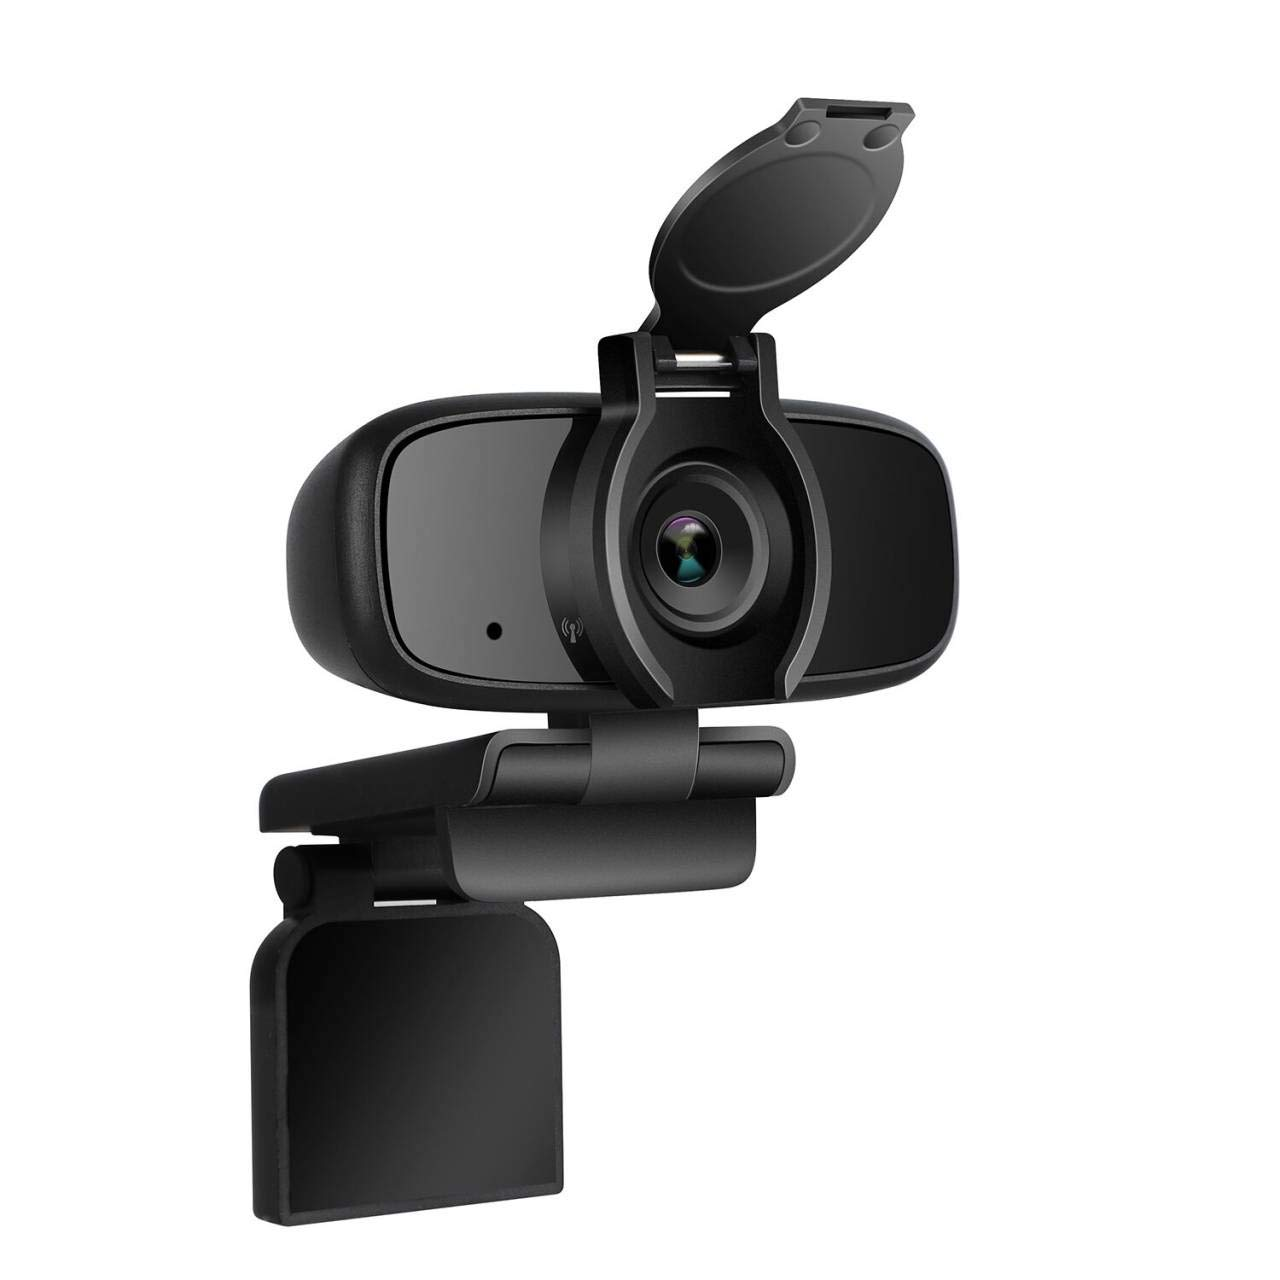 ZILINK 1080P Full HD Webcam, Computer and Laptop Camera, USB Webcam Stereo Audio Support Recording, Plug and Play for Conference and Video Call, Flexible Rotatable Clip